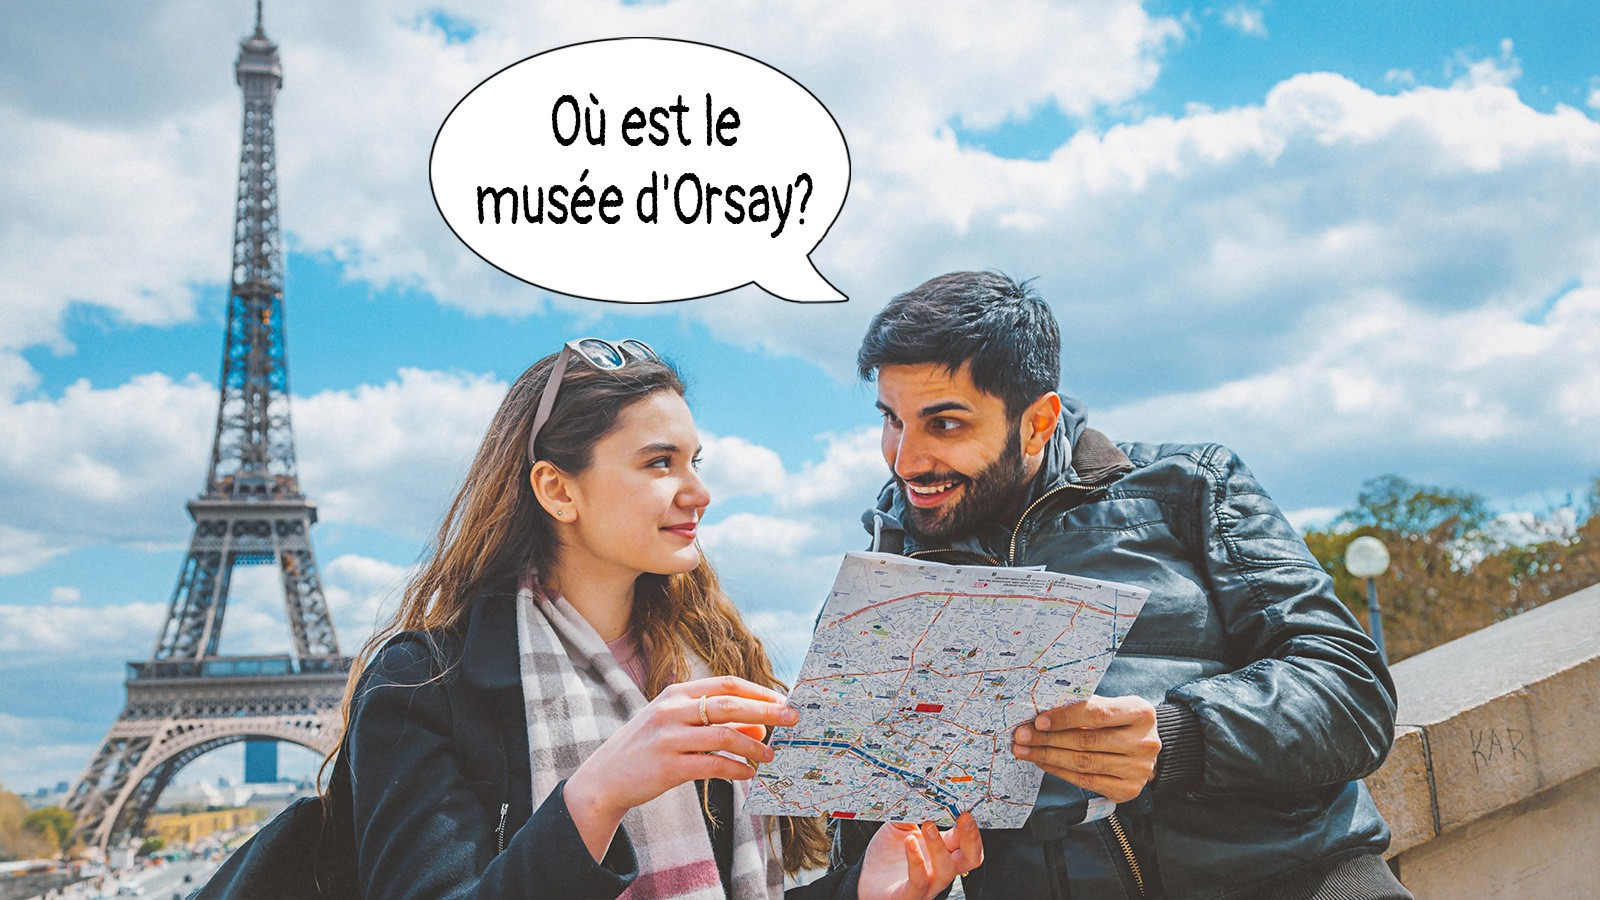 Basic french phrase using where is?